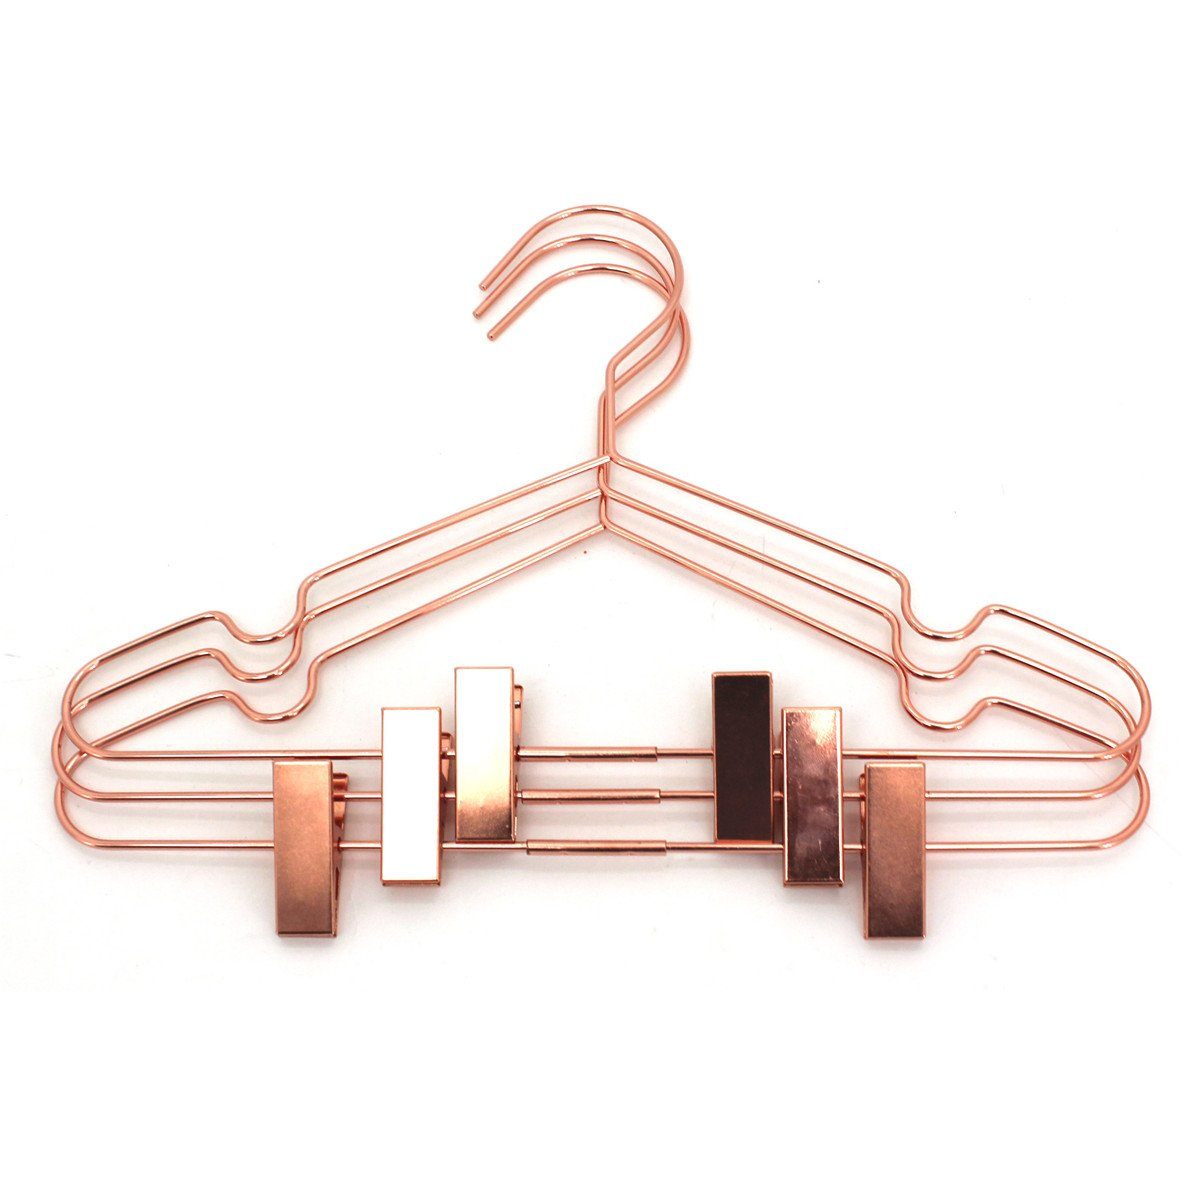 Koobay 50Pack 13'' Rose Copper Gold Shiny Metal Wire Top Clothes Hangers with Clips for Shirts Coat Storage & Display by Koobay (Image #6)